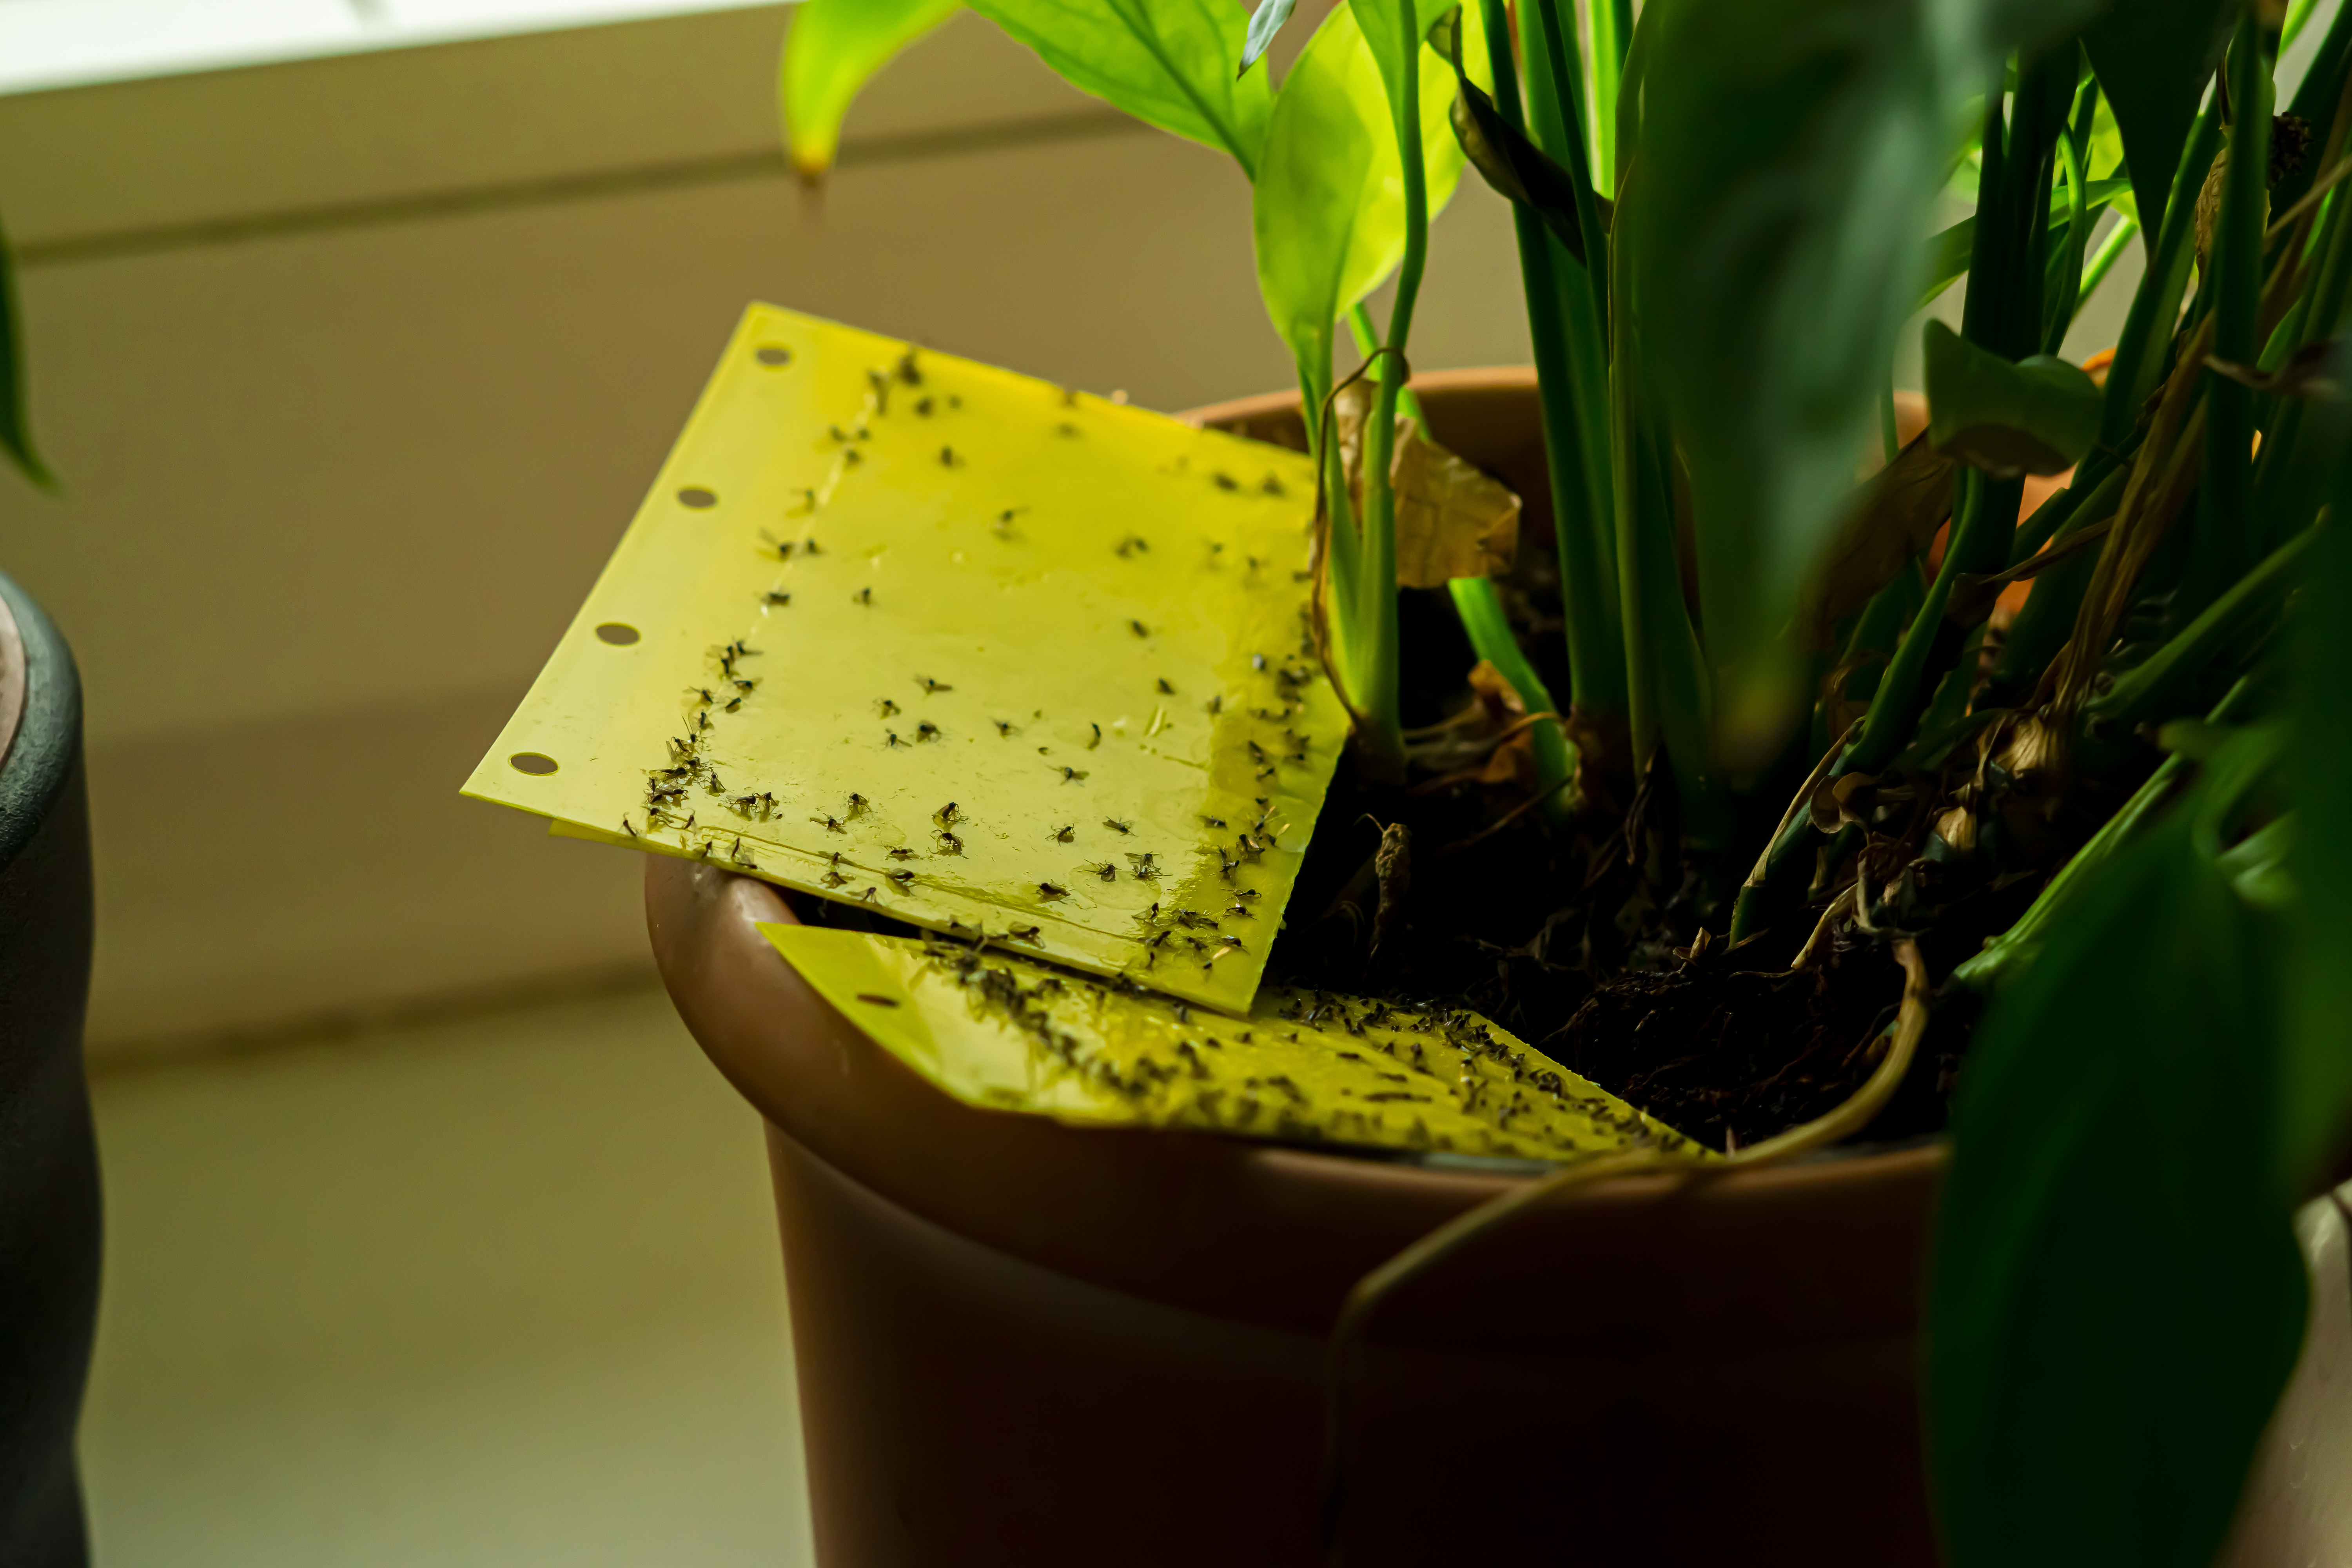 Sticky yellow gnat traps